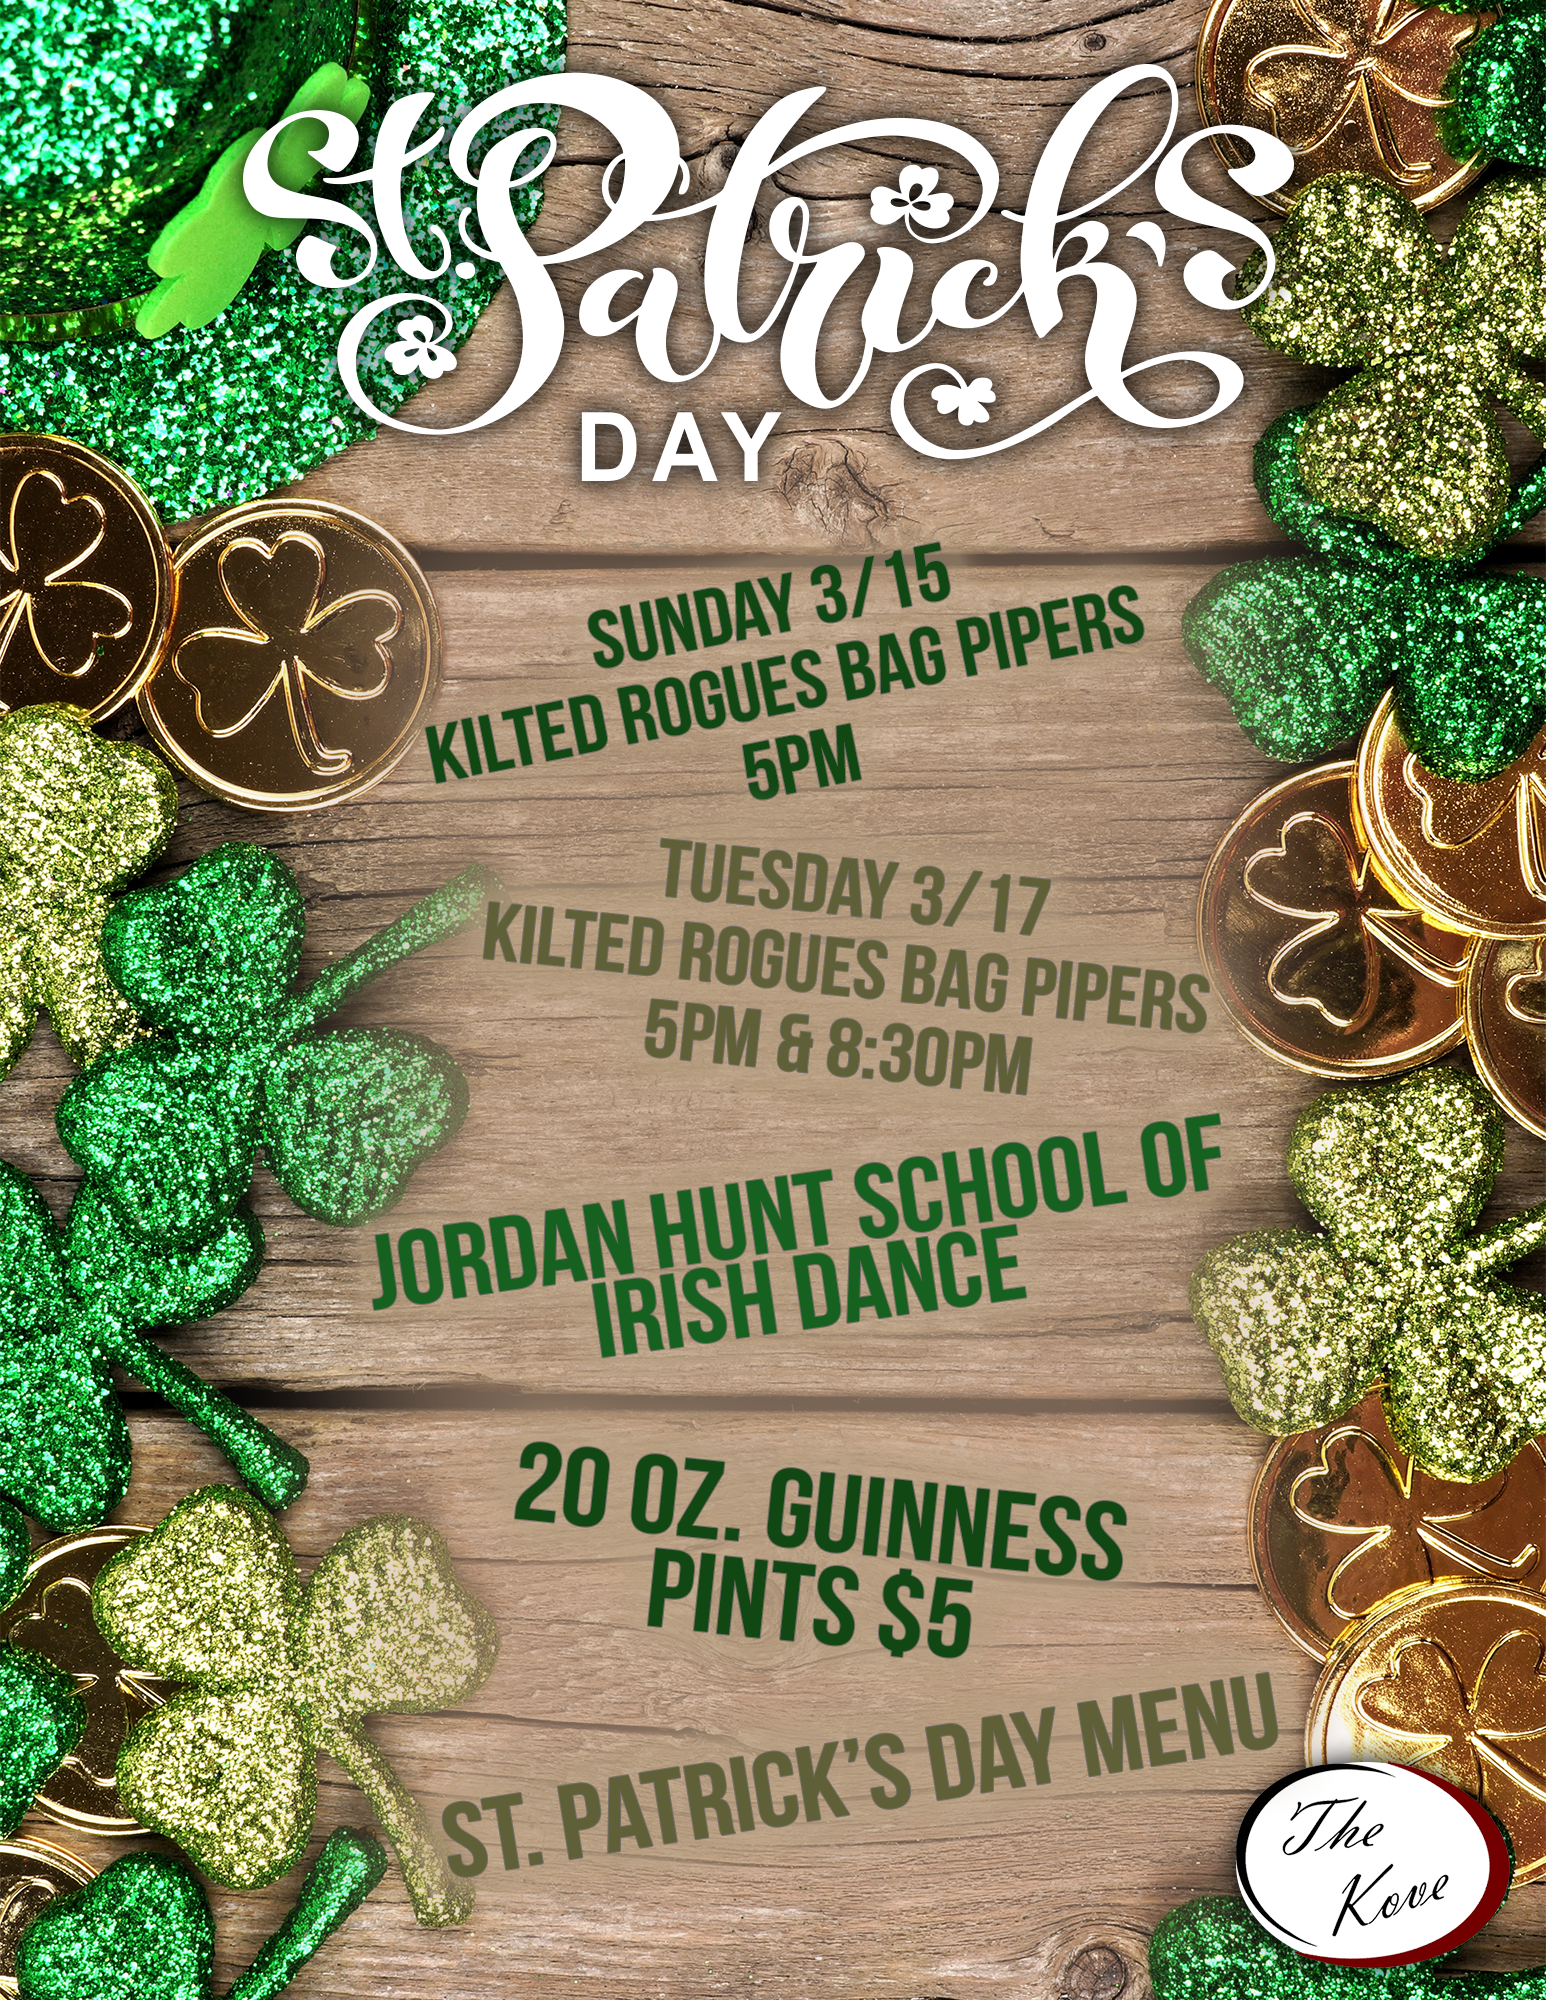 St. Patrick's Day: Sunday 3/15 Kilted Rogues Bag Pipers 5pm; Tuesday 3/17 Kilted Rogues Bag Pipers 5pm & 8:30pm; Jordan Hunt School of Irish Dance; 20 oz. Guinness Pints $5; St. Patrick's Day Menu. The Kove Logo. Background features gold coins and glittery shamrocks on a wooden surface.